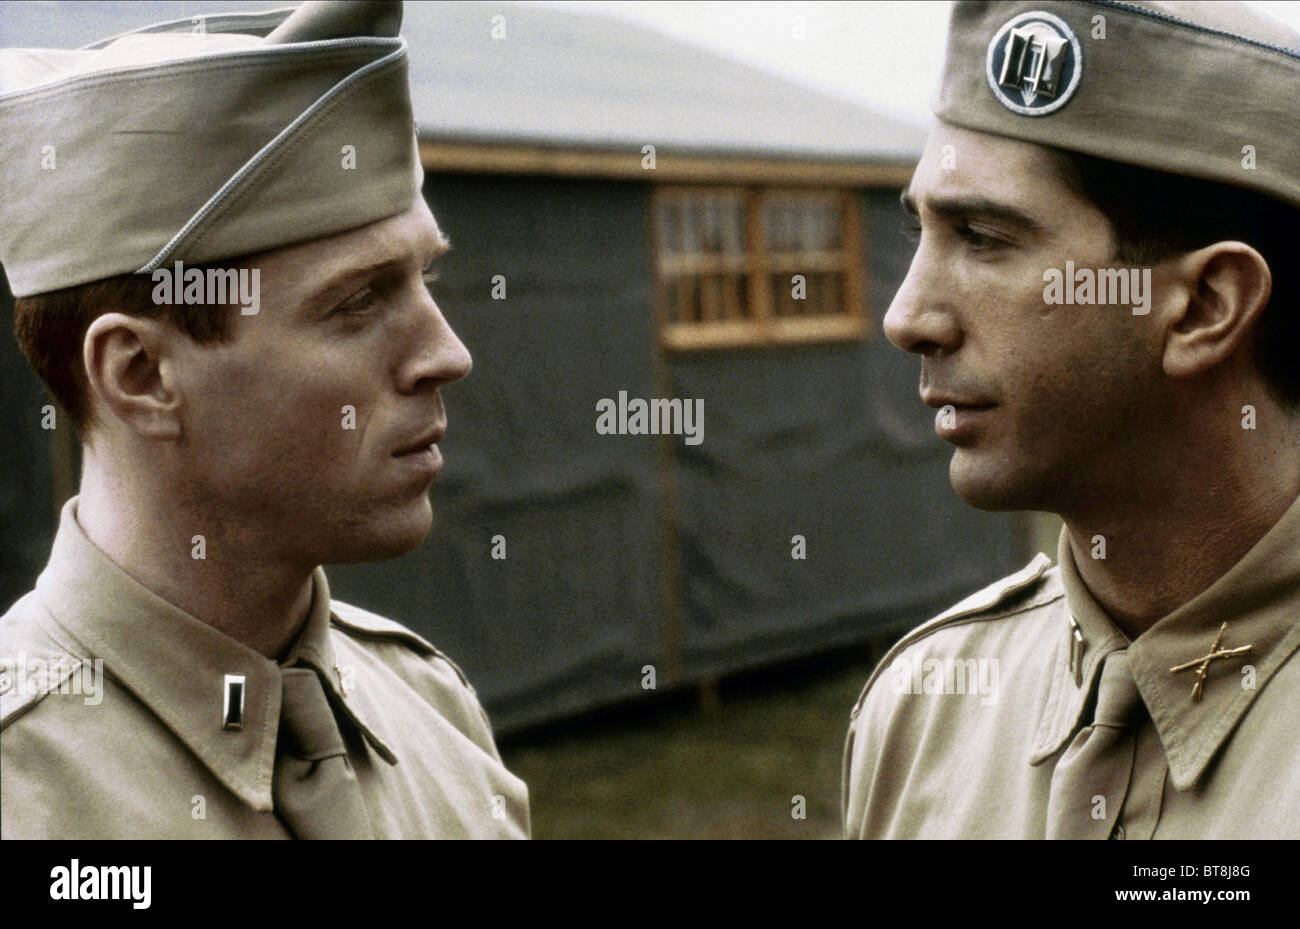 DAMIAN LEWIS & DAVID SCHWIMMER BAND OF BROTHERS (2001) - Stock Image